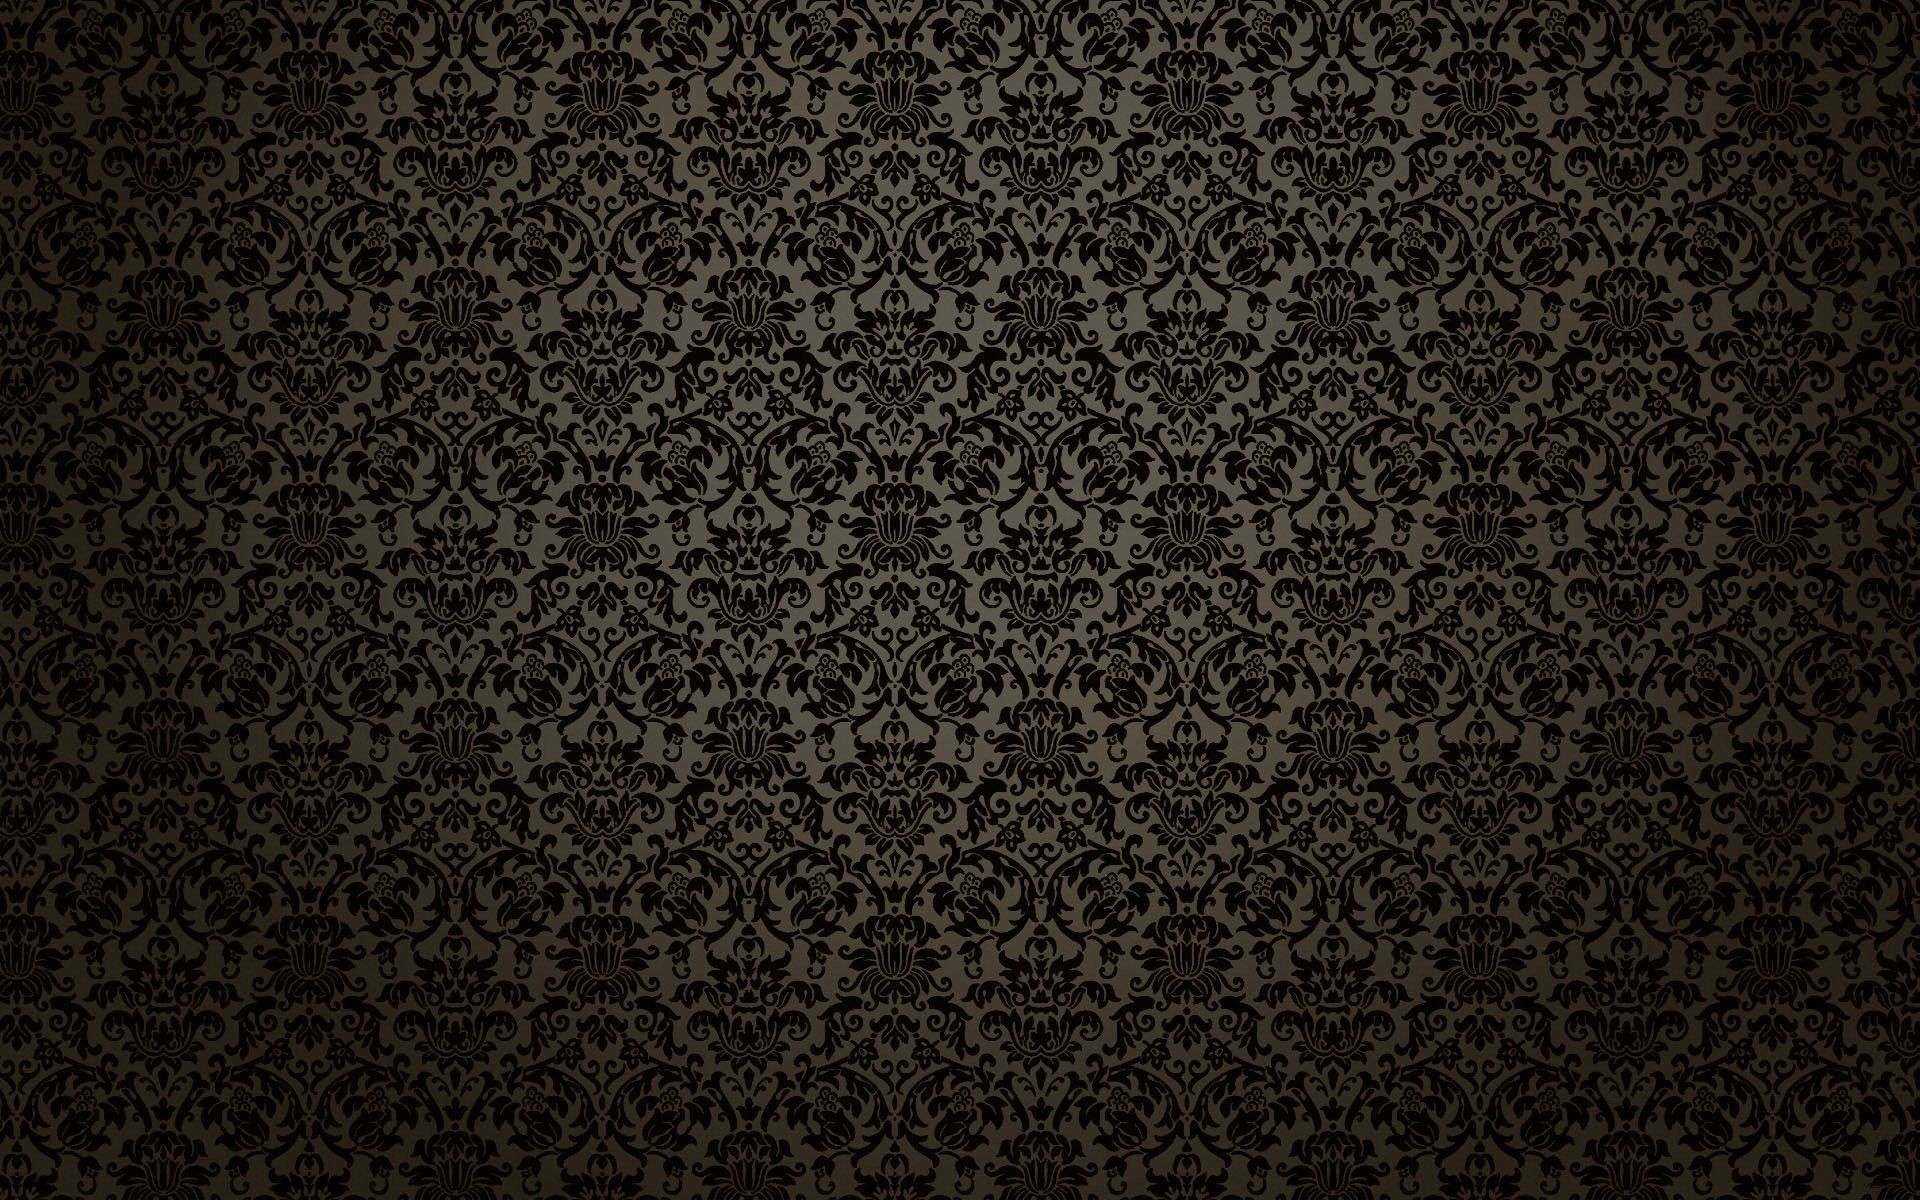 Gothic Victorian Wallpaper | HD Wallpapers | Pinterest | Gothic, Victorian  and Hd wallpaper